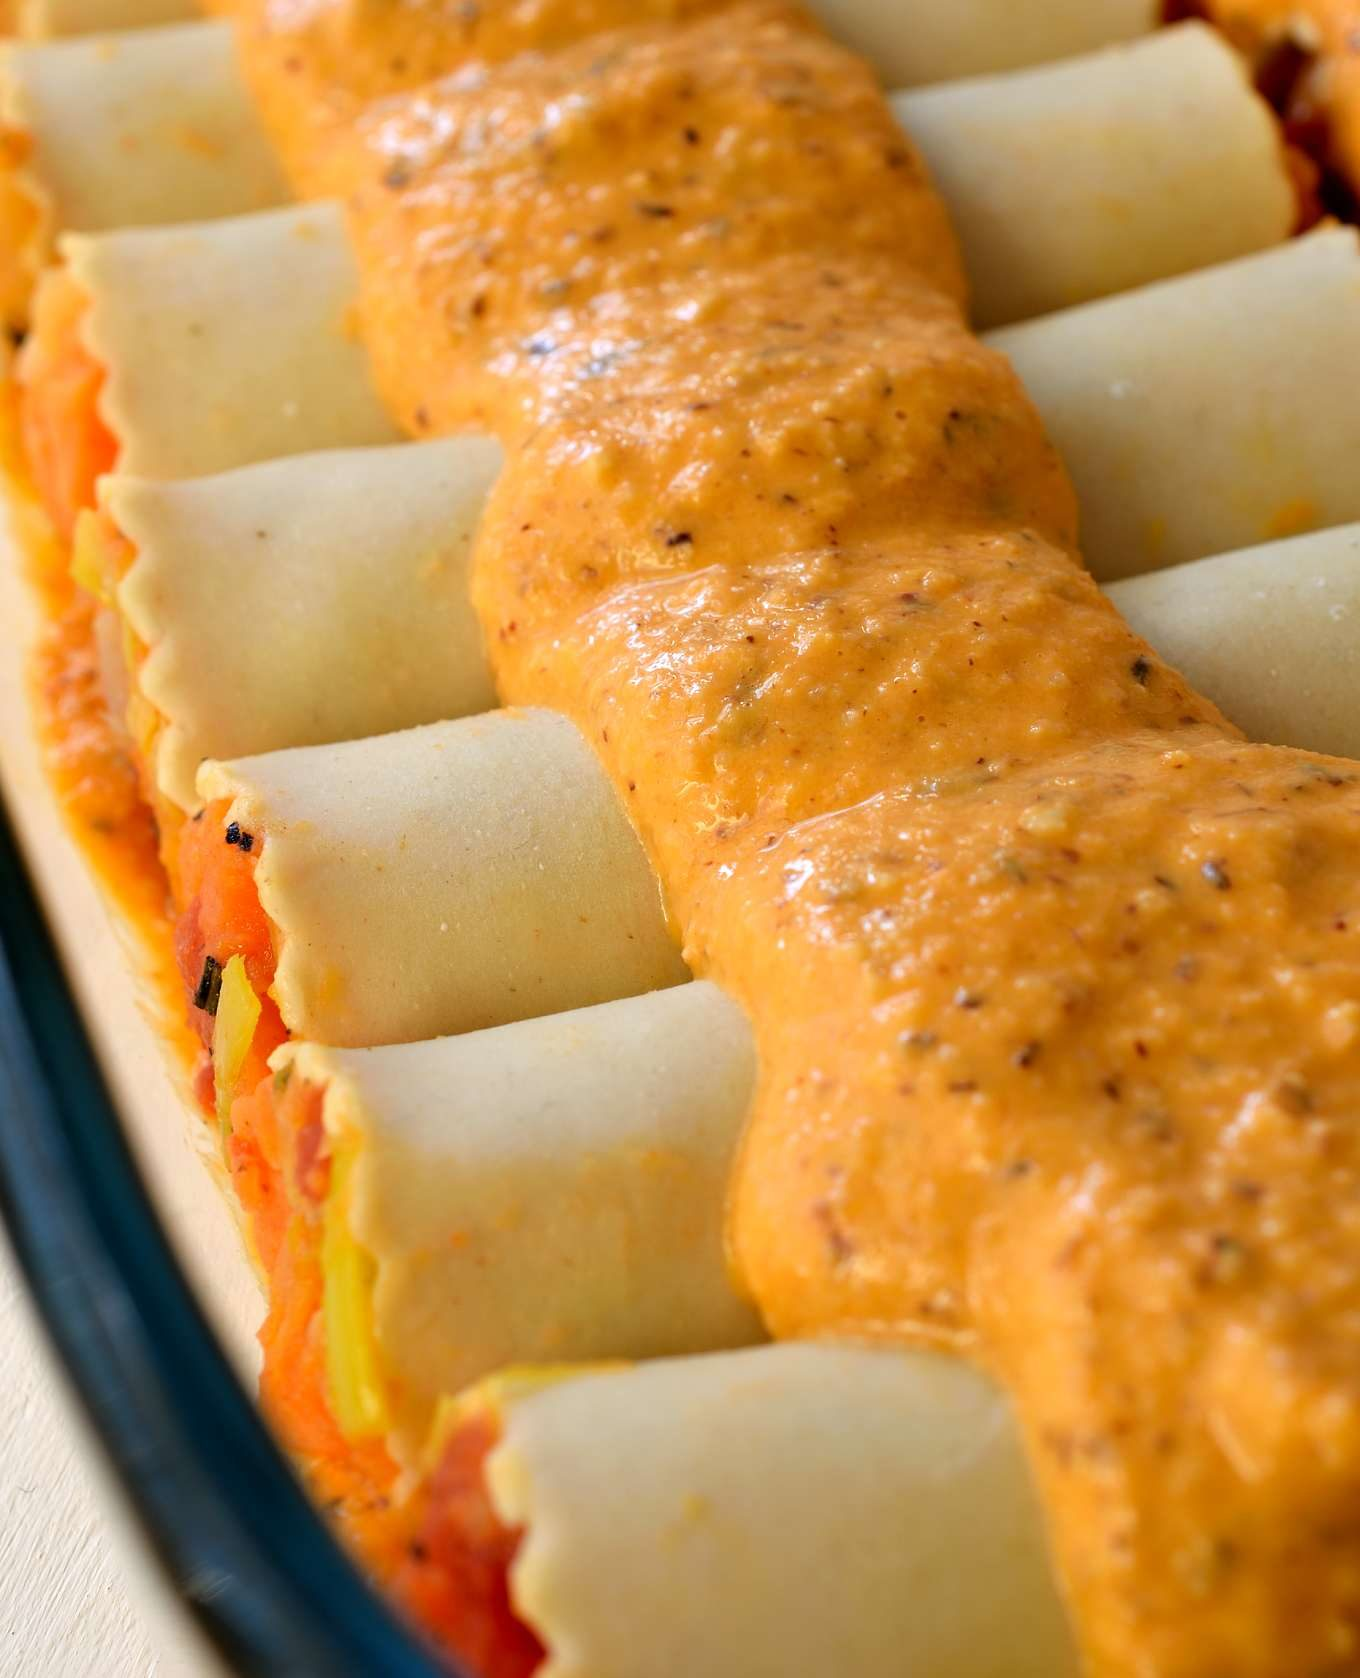 This vegan cannelloni recipe is a delicious soy-free dish to warm you up on a chilly evening. Roasted root vegetables are stuffed inside pasta tubes, smothered in a homemade romesco sauce and sprinkled with breadcrumbs for a crispy crust. This elegant dish uses the best of winter's seasonal vegetables and makes a great vegan holiday dish.